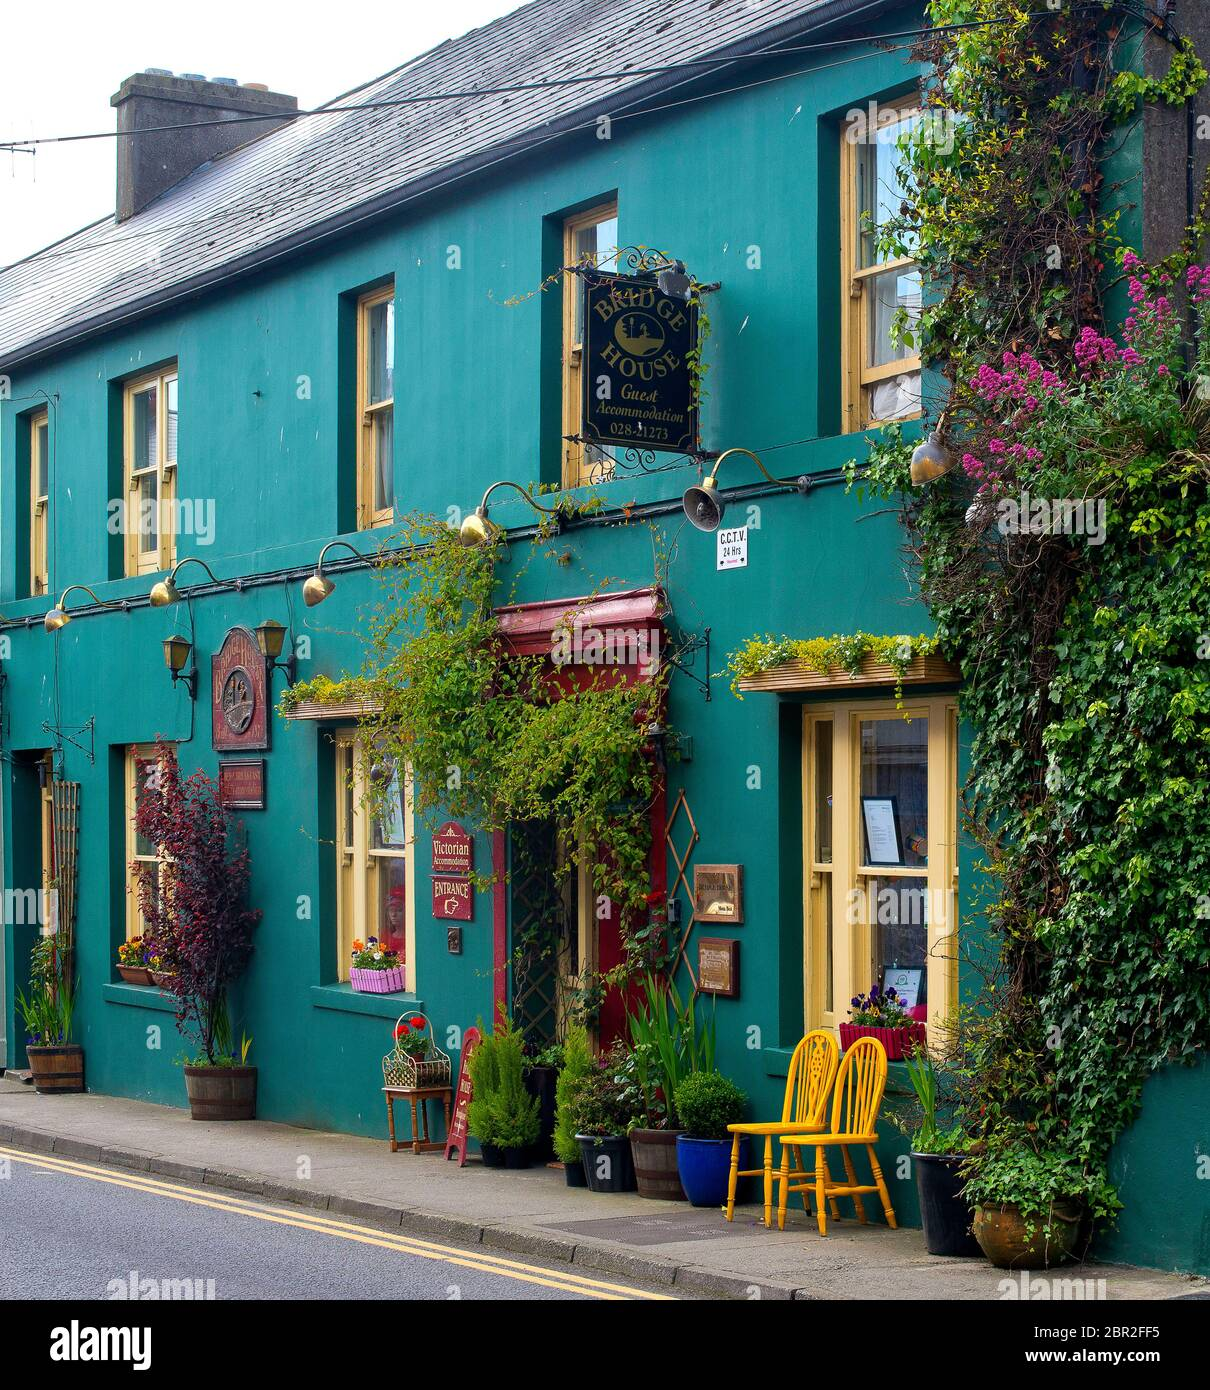 Skibbereen Hotels - Where to stay in Skibbereen | potteriespowertransmission.co.uk